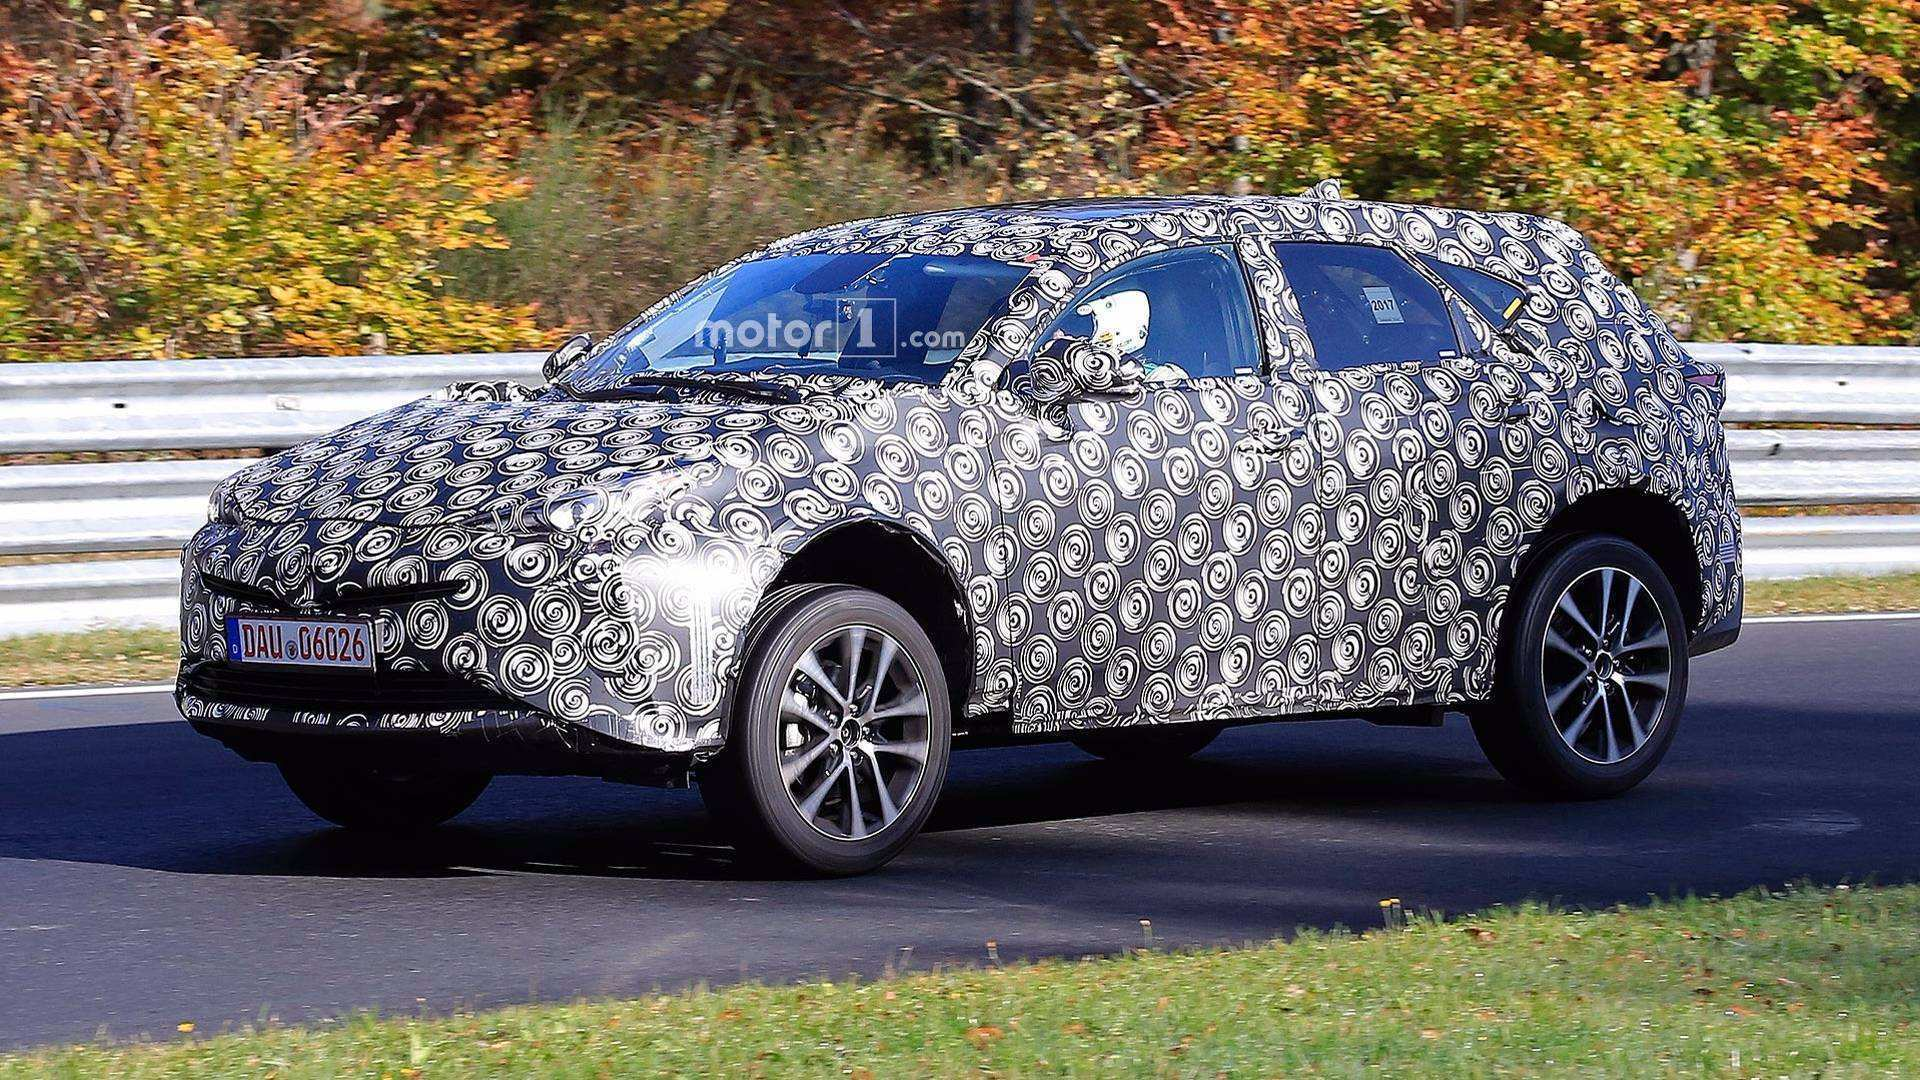 66 All New 2019 Spy Shots Toyota Prius Redesign